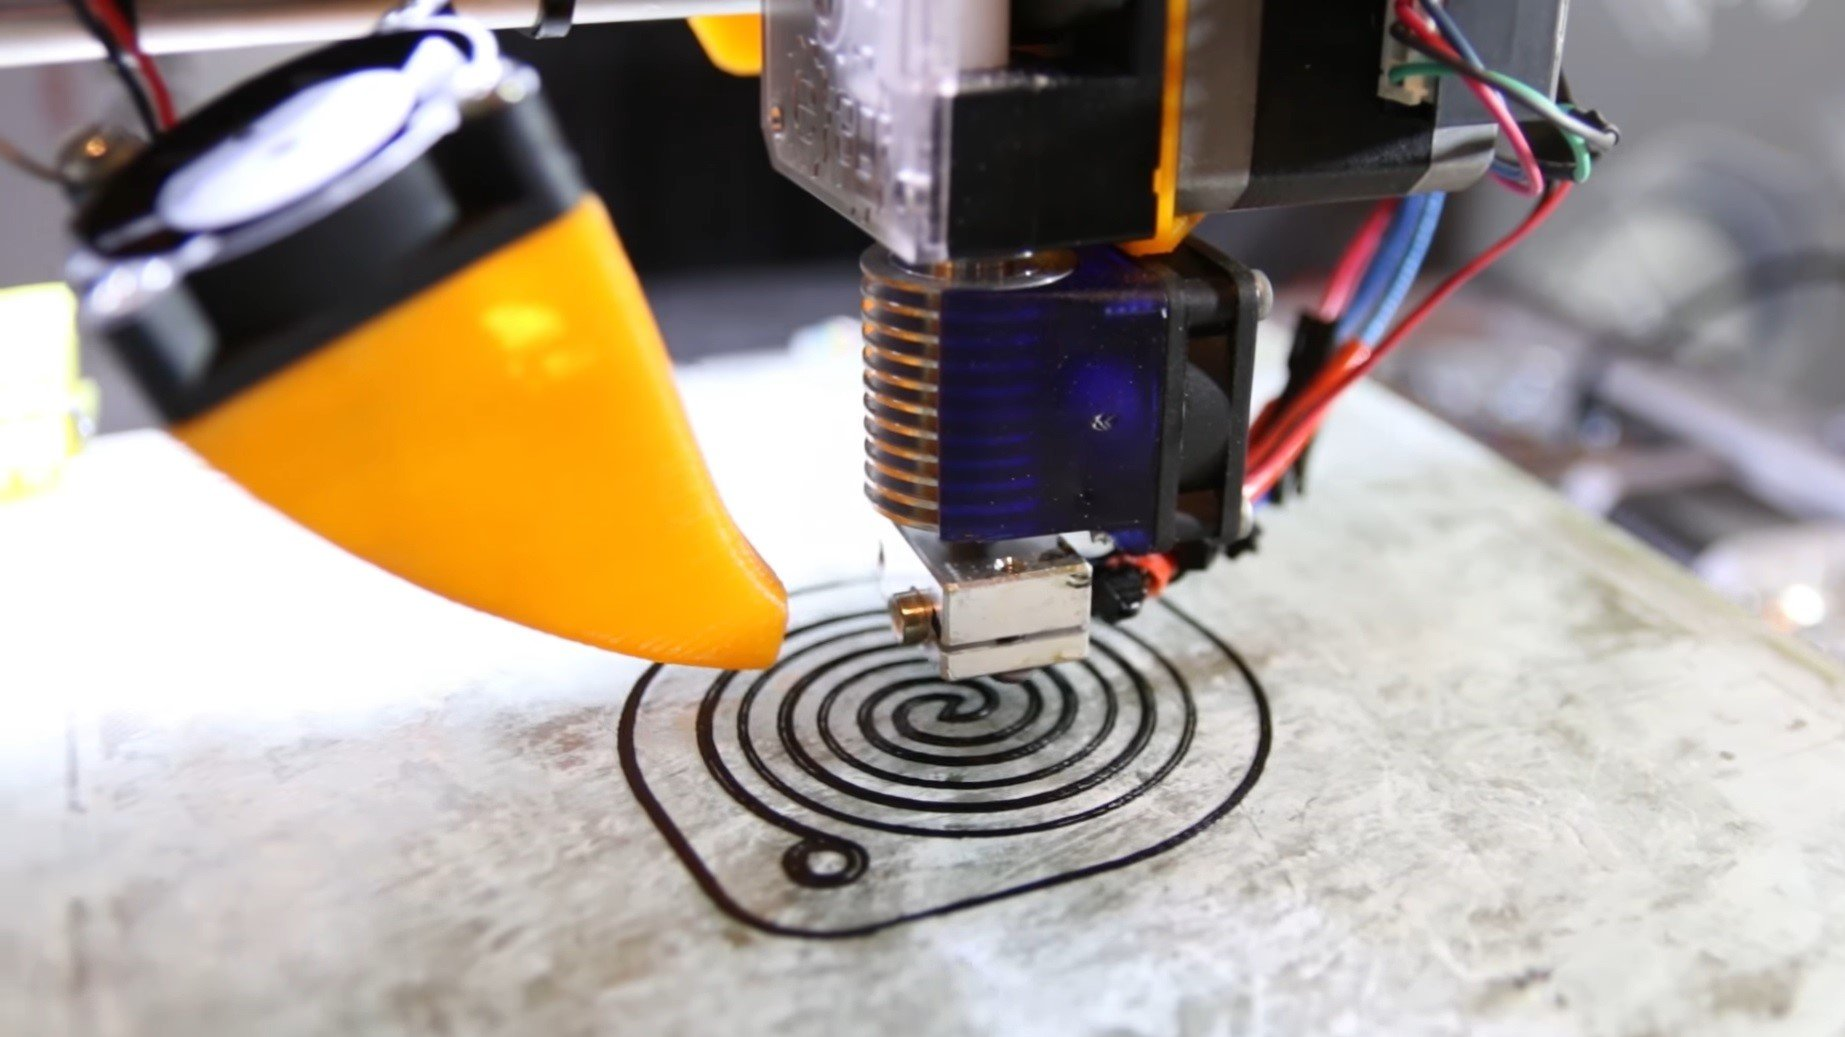 PCB 3D Printer: All About 3D Printed Circuit Boards | All3DP